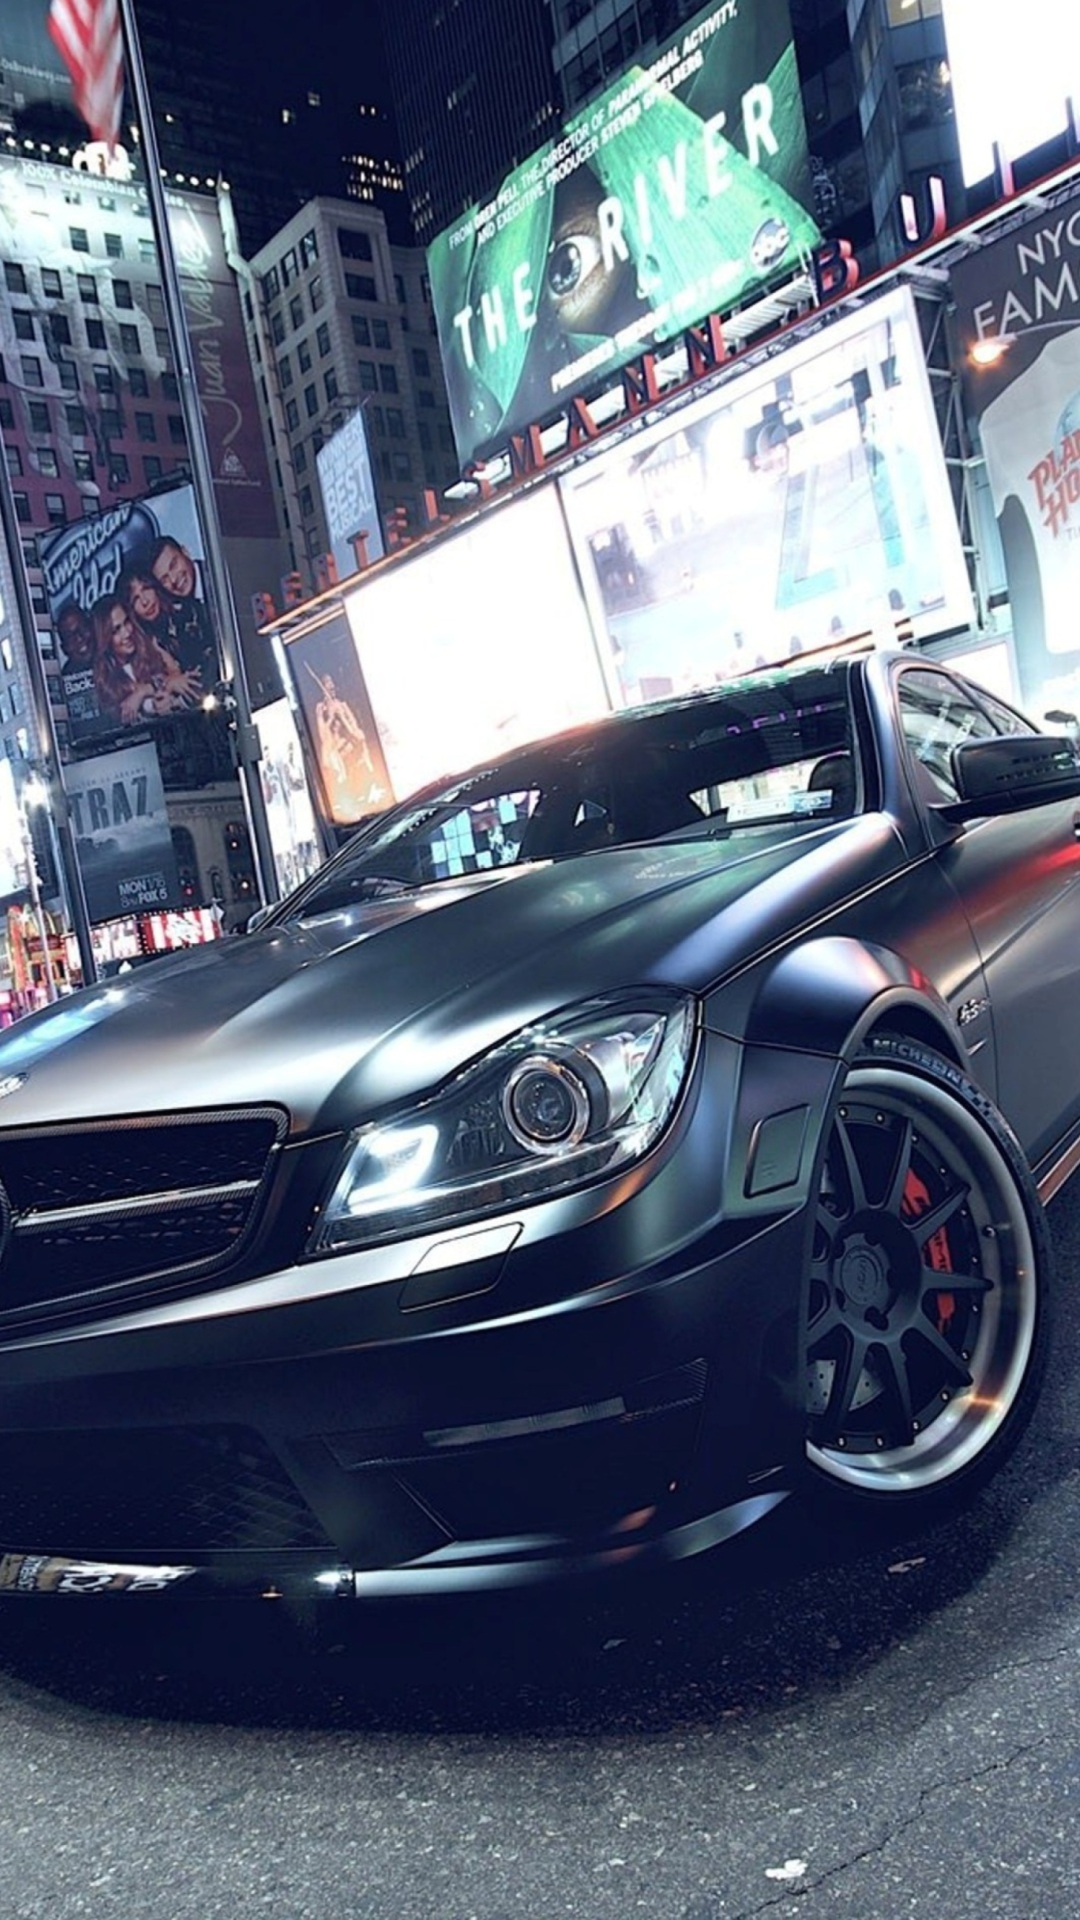 Mercedes-Benz C63 AMG Wallpaper for iPhone 6 Plus